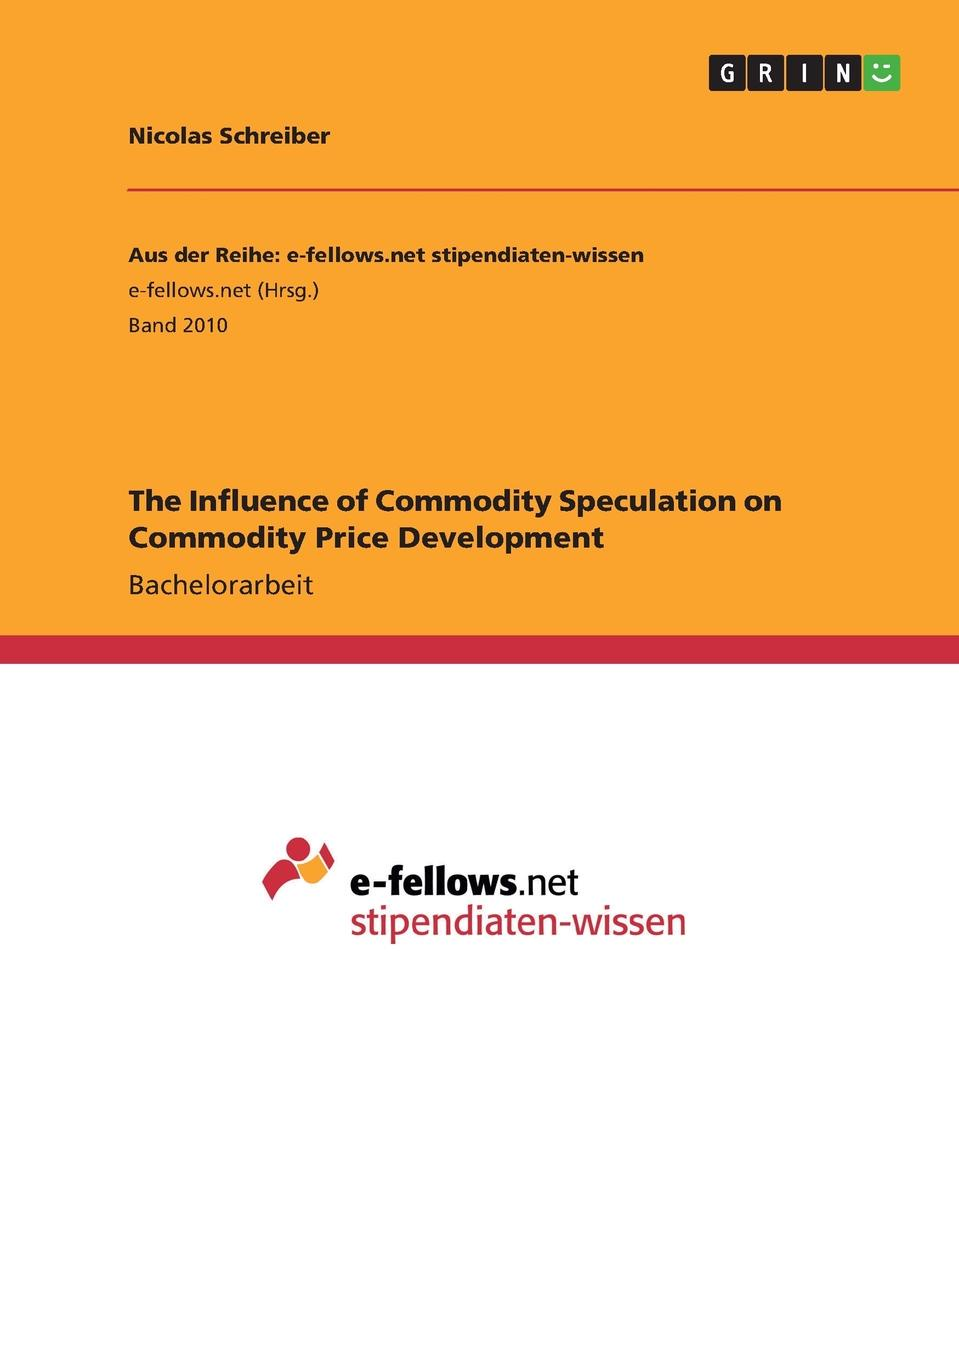 Nicolas Schreiber The Influence of Commodity Speculation on Commodity Price Development helyette geman commodities and commodity derivatives modeling and pricing for agriculturals metals and energy